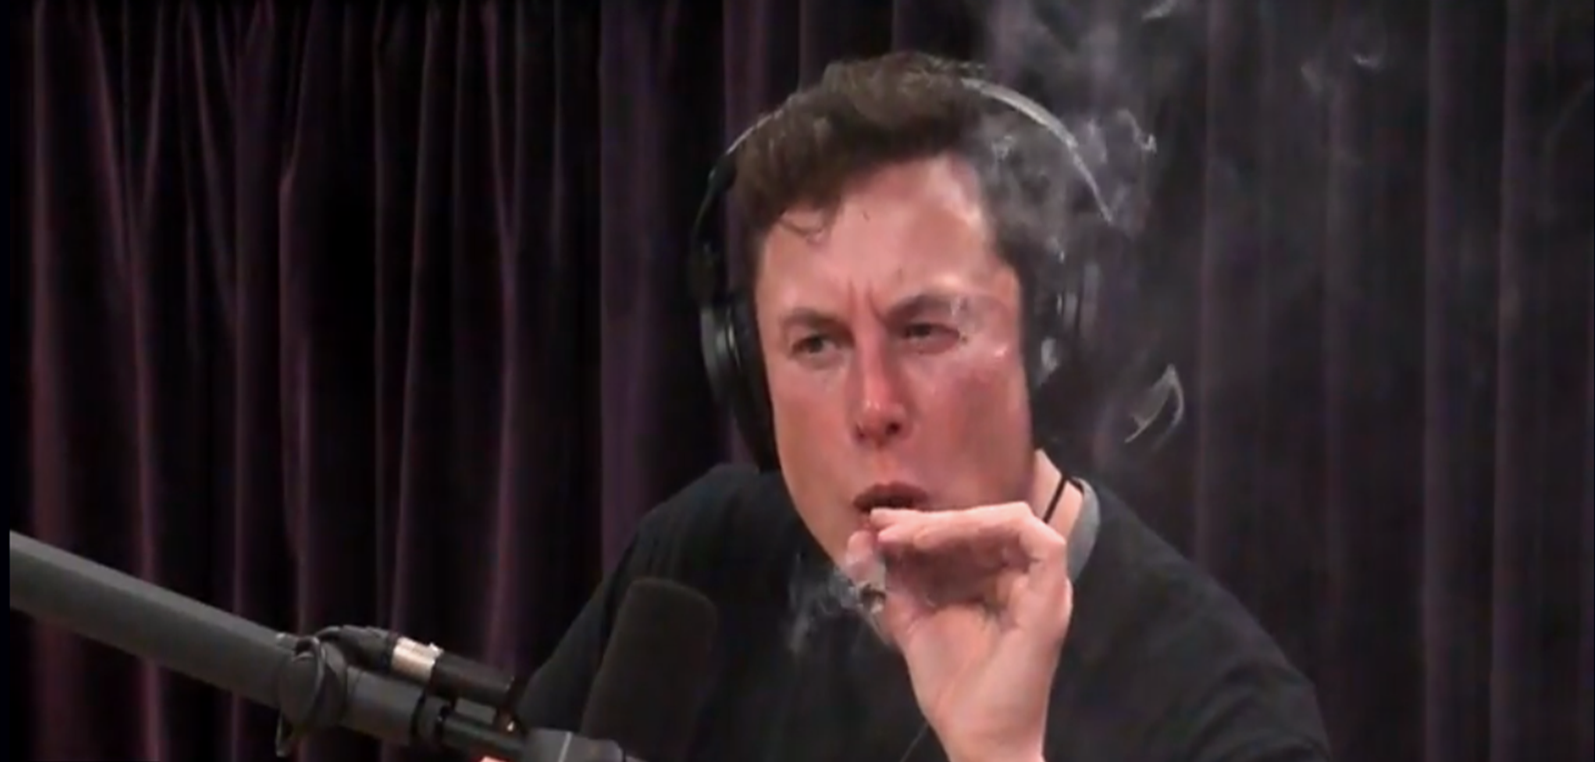 During an interview on the Joe Rogan Experience, Elon Musk sampled a tobacco/marijuana cigar. The reaction, or overreaction, from the media was as disappointing as it was unnecessary. Image Credit: PowerfulJRE